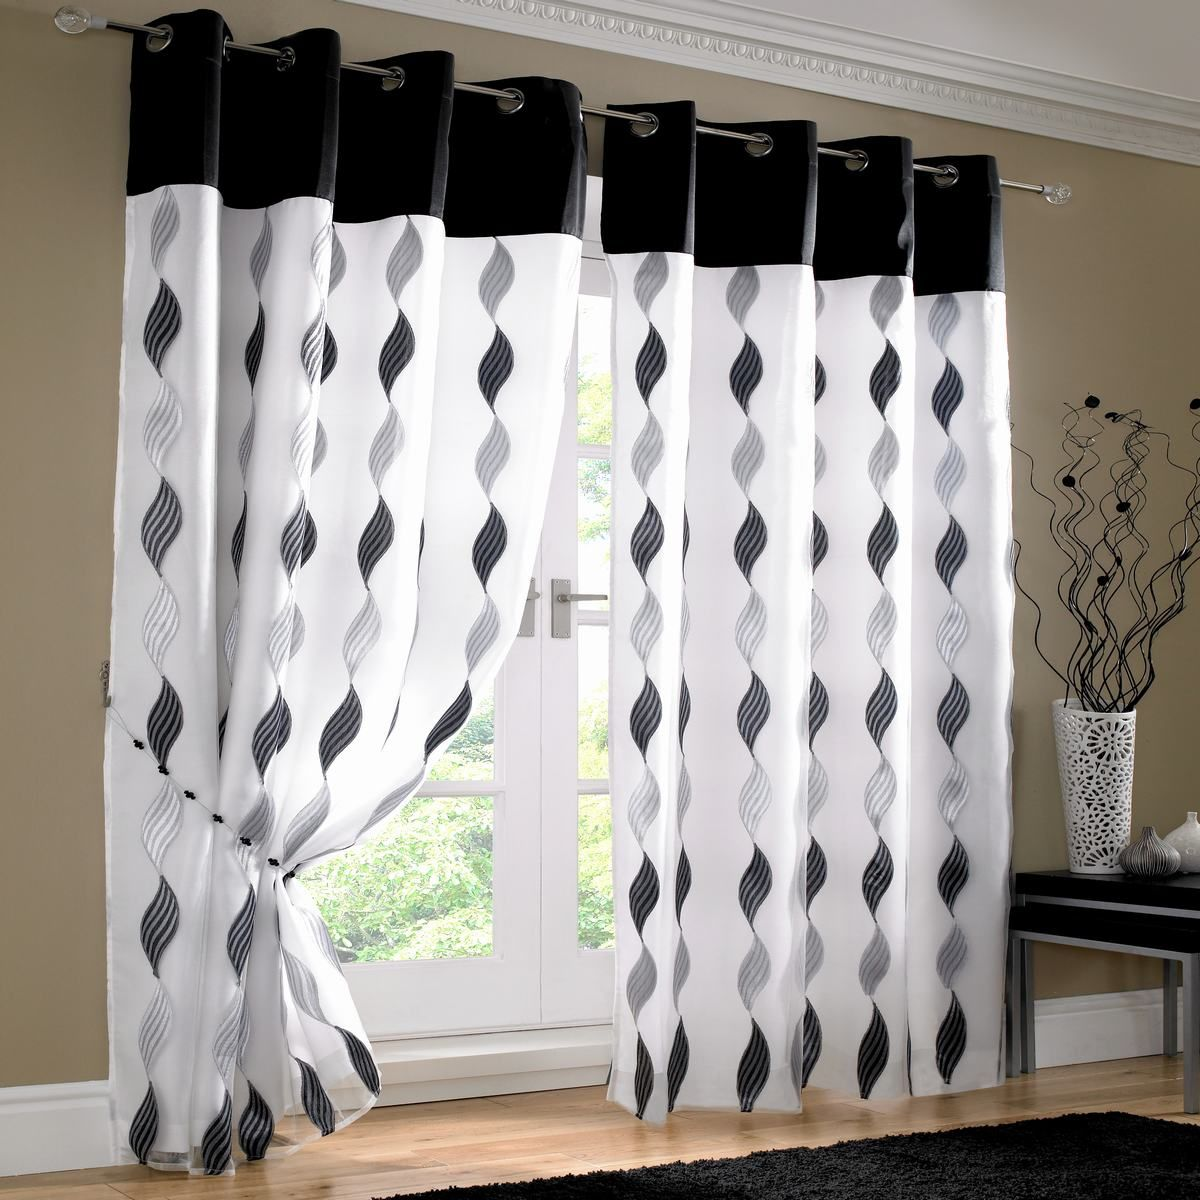 Black and white curtain - Voile Curtains Readymade Curtain Tab Top